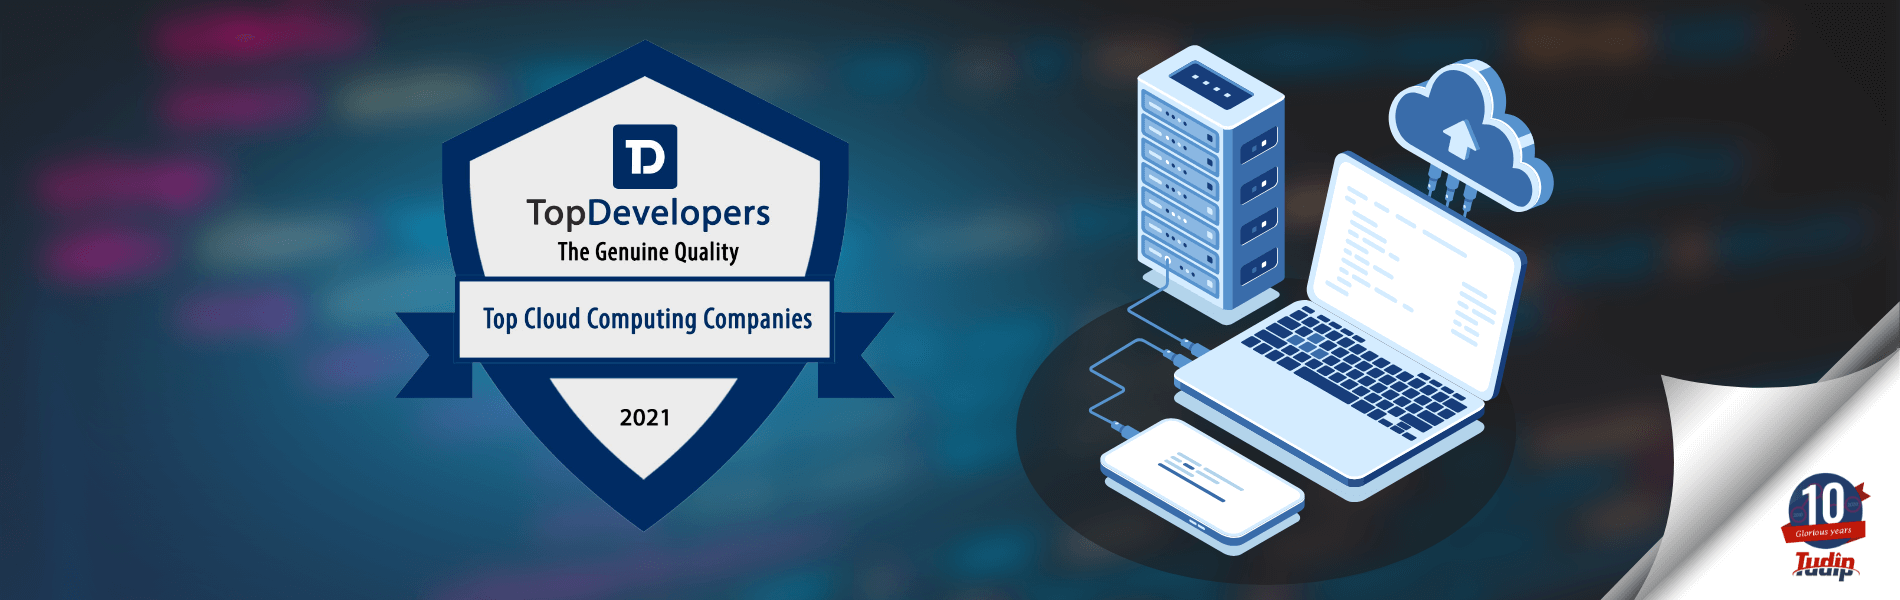 Tudip has been announced as one of the Top Cloud App Development Companies of 2021